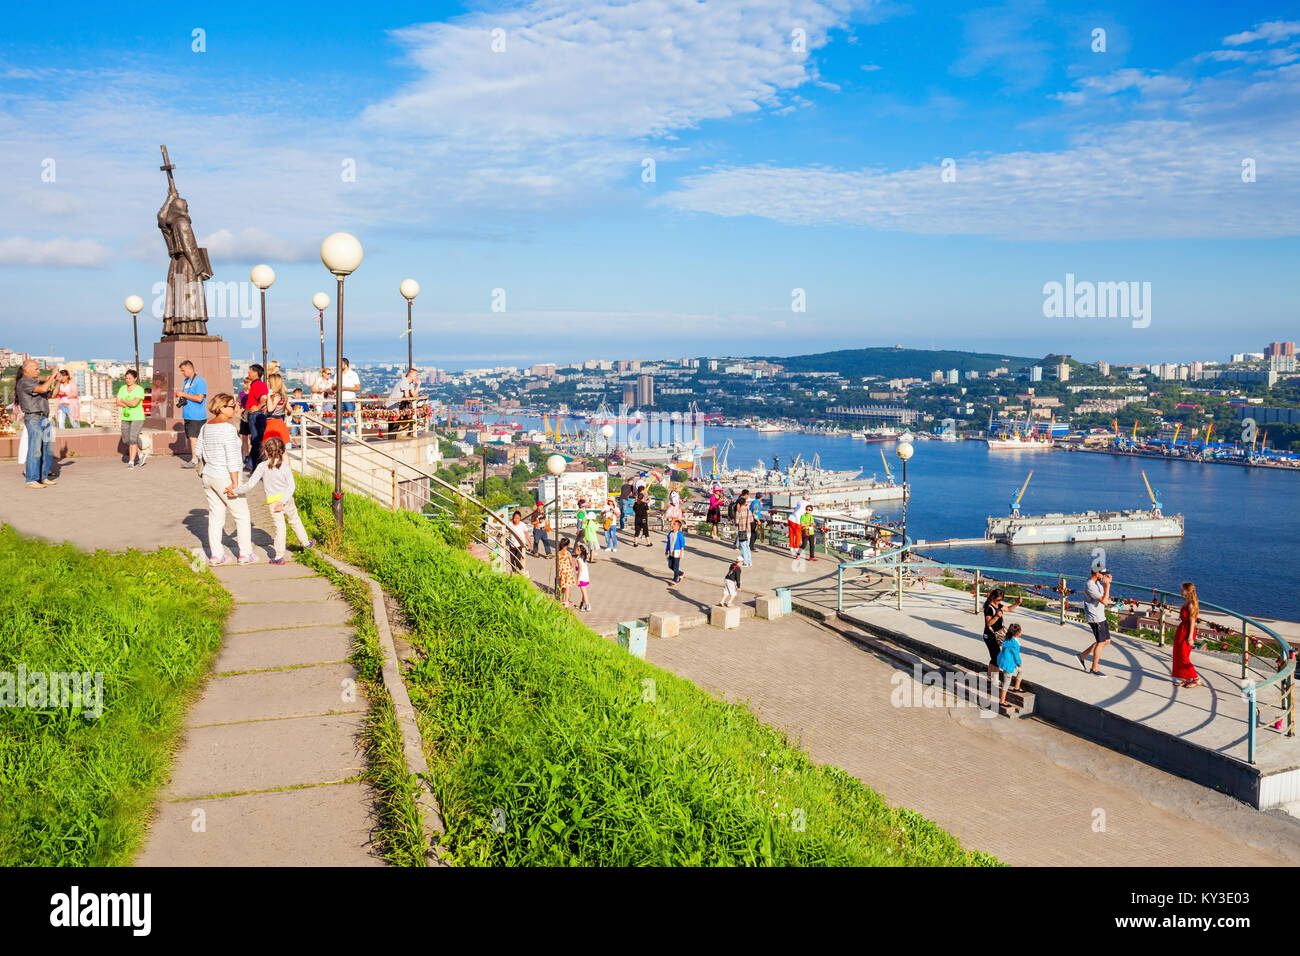 VLADIVOSTOK, RUSSIA - JULY 17, 2016: Chapel and Monument of Cyril and Methodius, Educators and creators of the Slavic - Stock Image